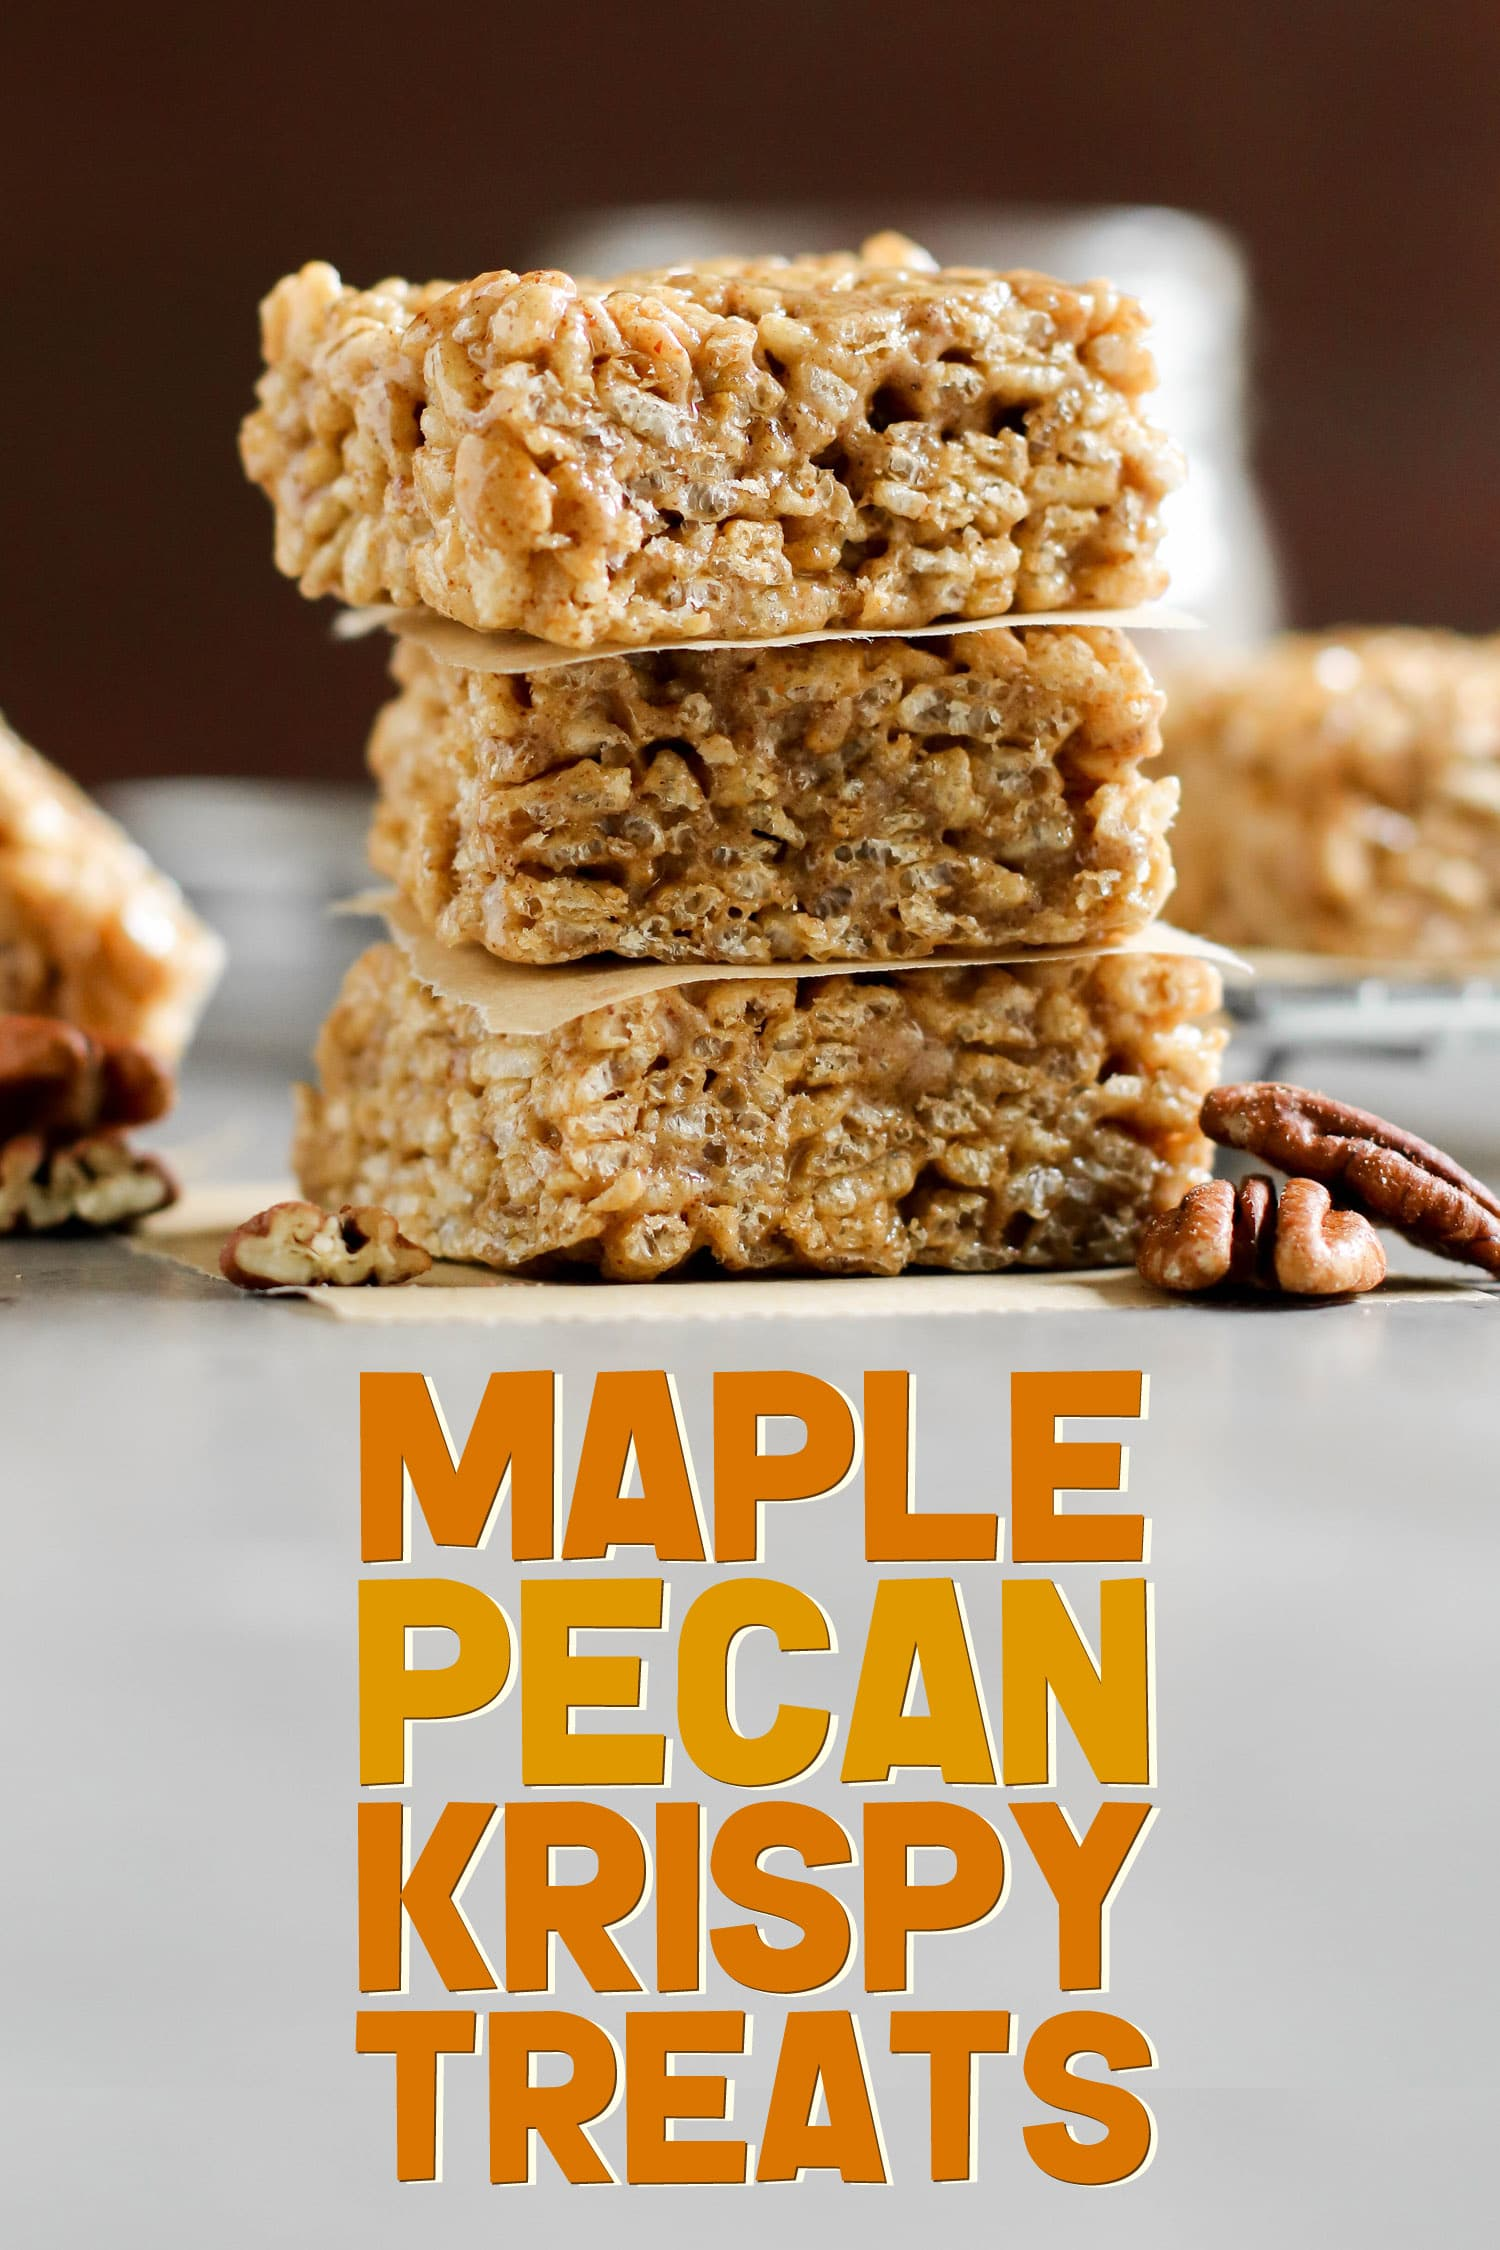 These easy, no-bake Maple Pecan Krispy Treats are chewy, crunchy, 100% delicious, and secretly healthy! You'd never know they're refined sugar free, high protein, and gluten free too. Made with pure maple syrup and easy homemade pecan butter. #glutenfree #highprotein #healthy #healthydessert